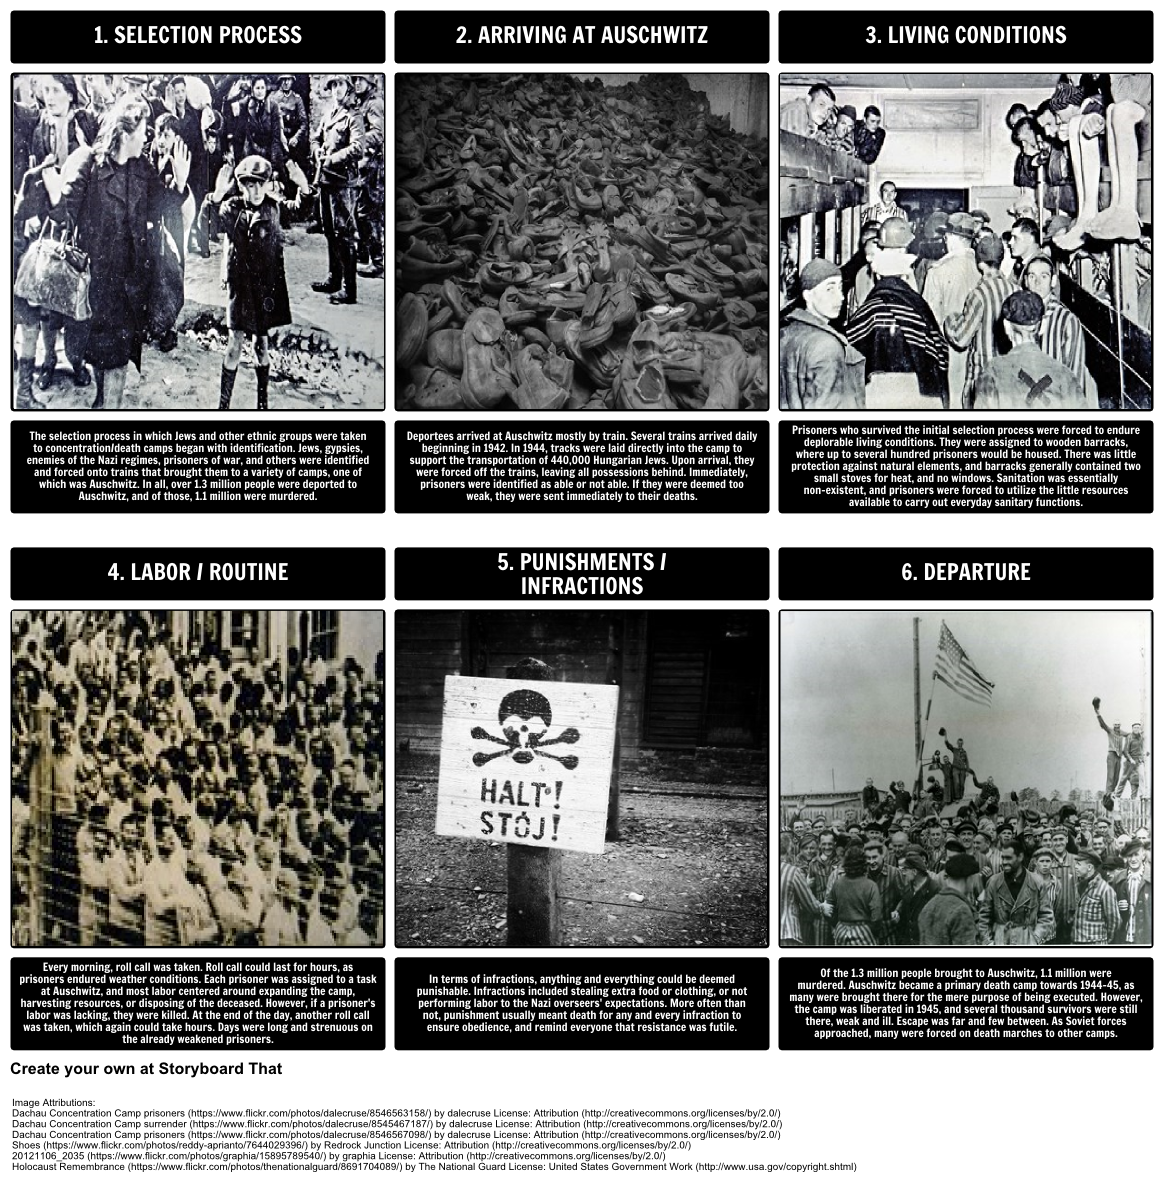 The History of the Holocaust - Life in Auschwitz